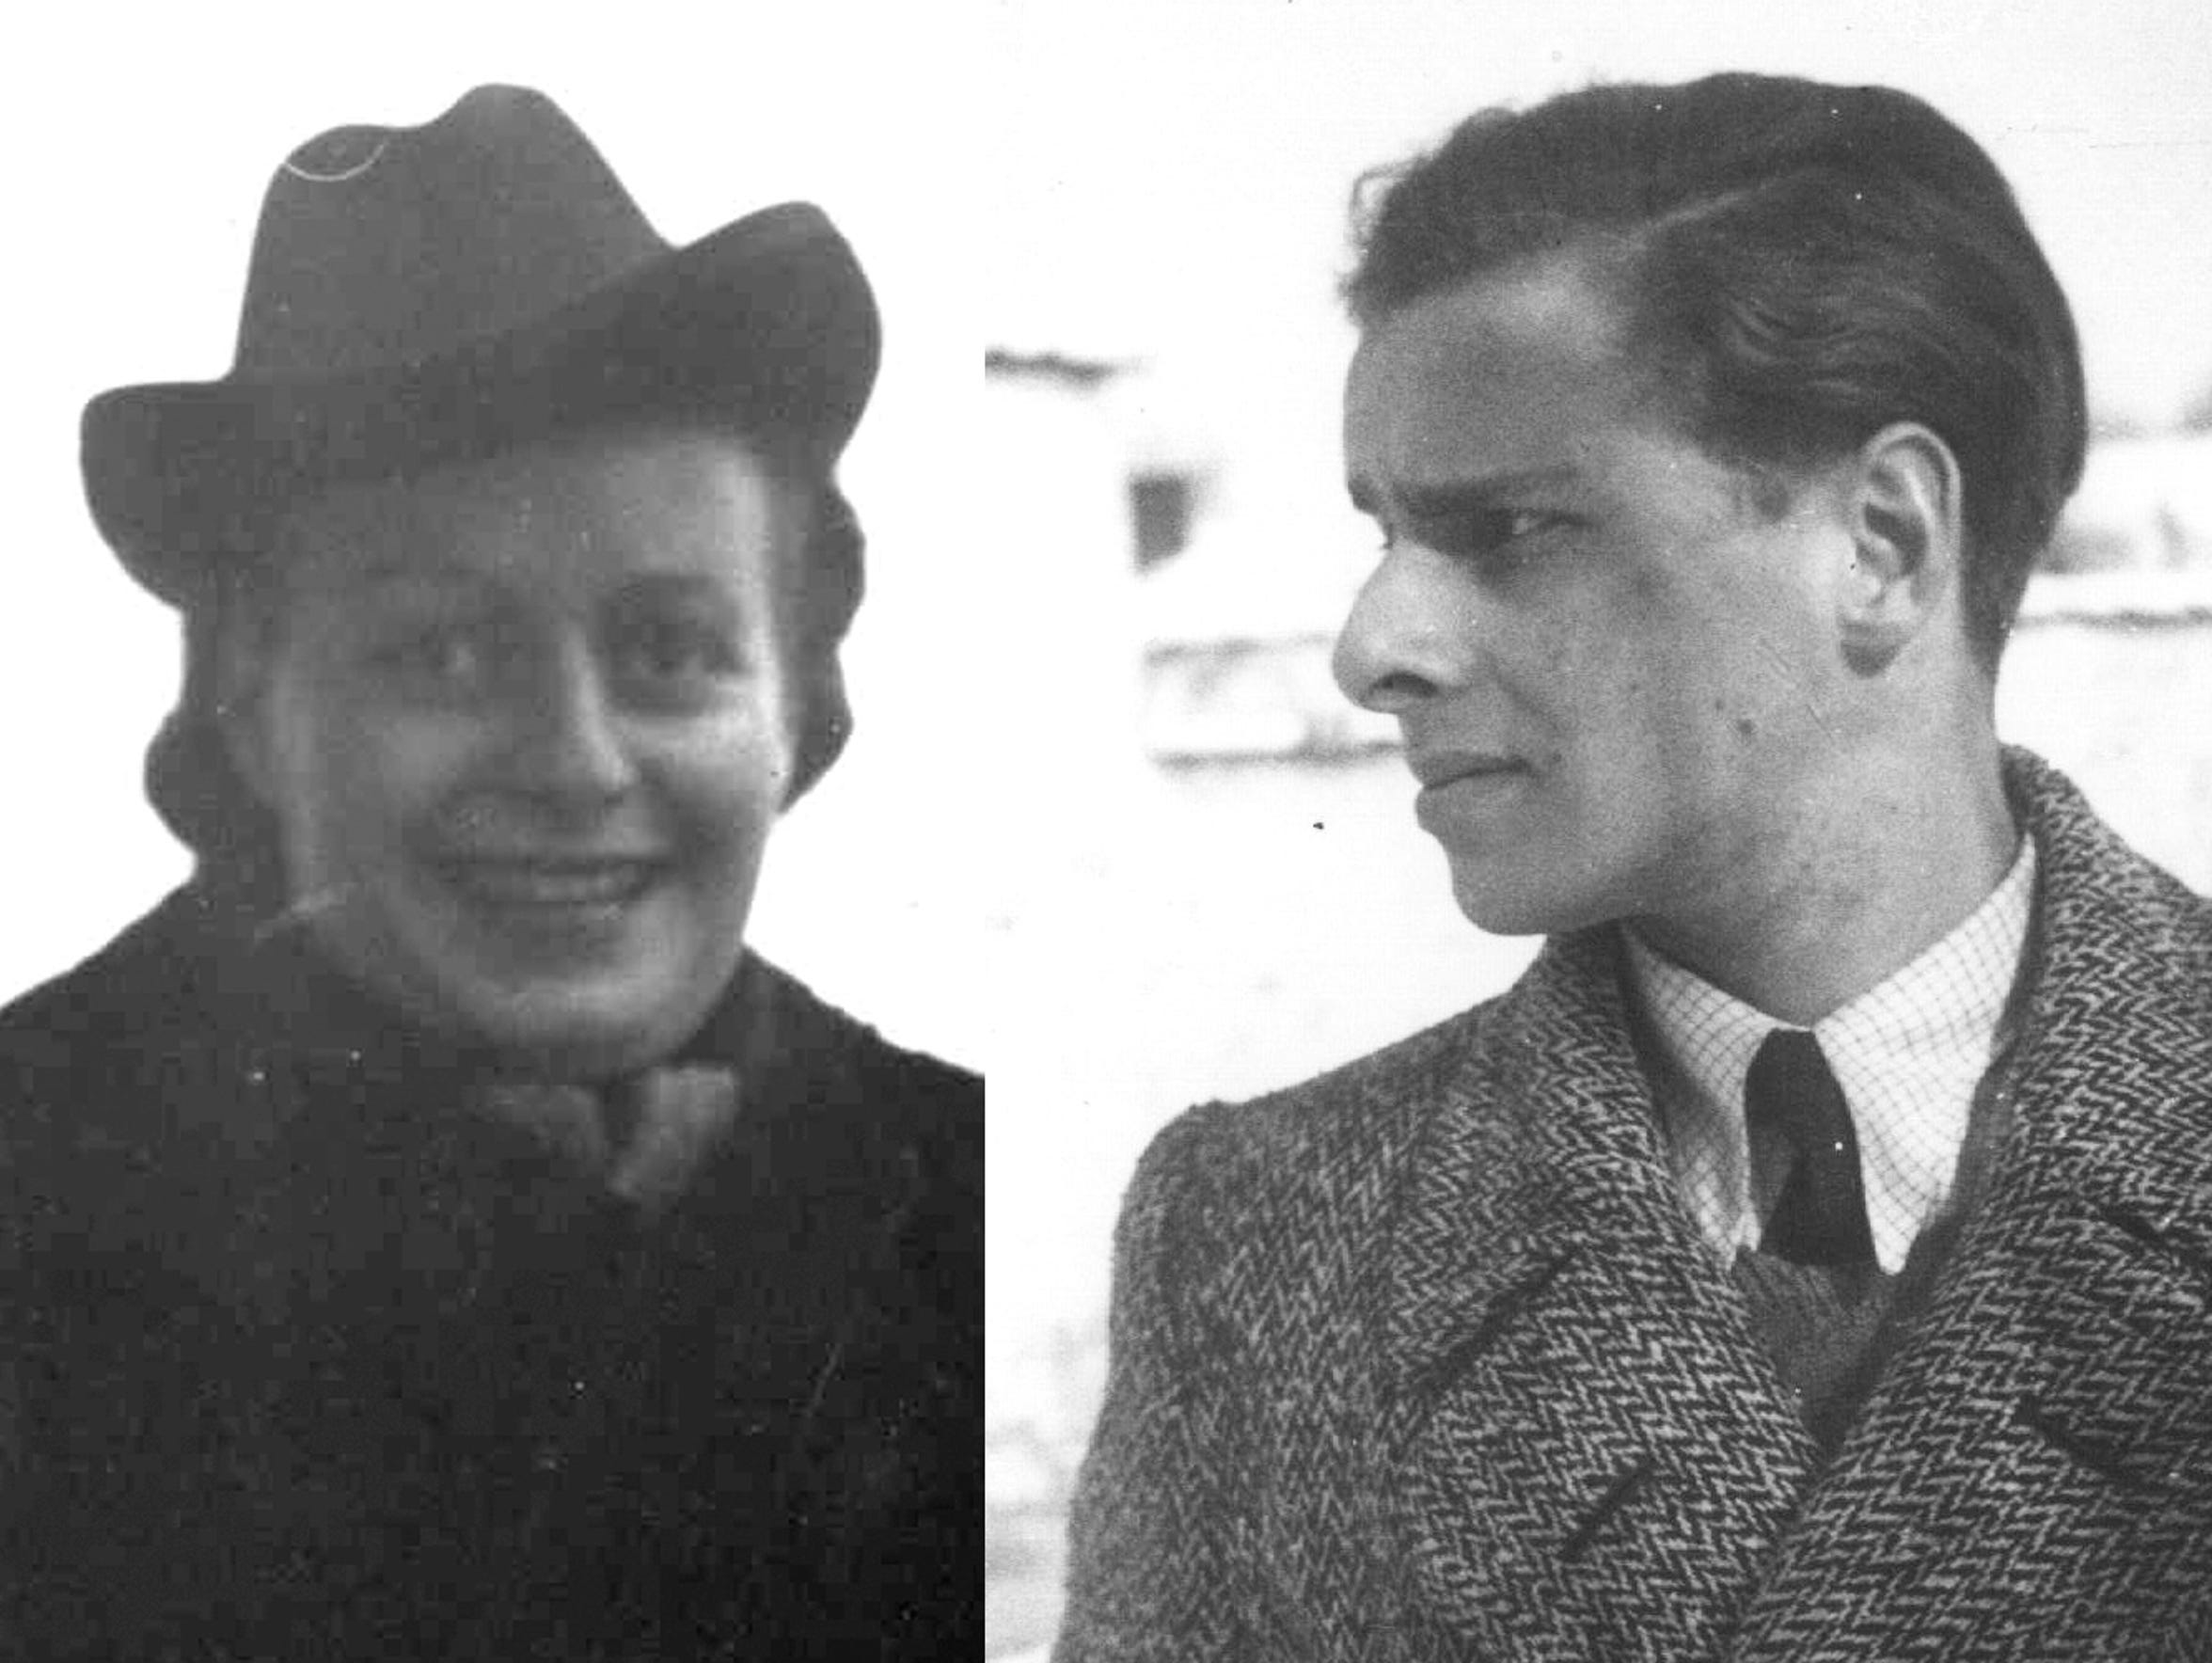 Lore Grunewald and her brother Klaus were both taken